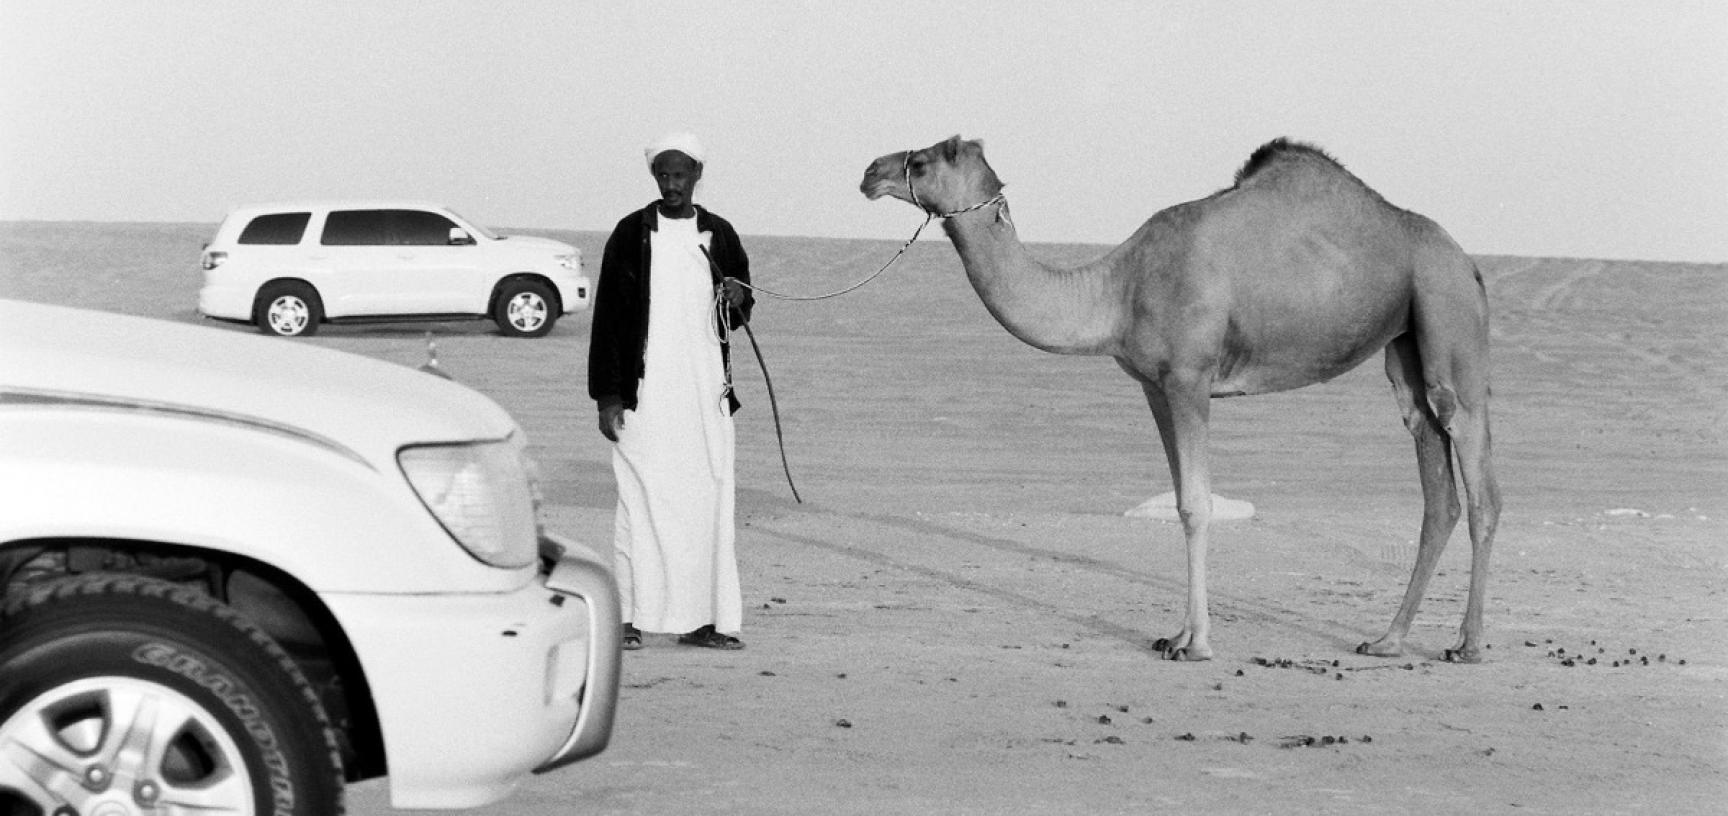 Sudanese camel trader. Abu Dhabi, United Arab Emirates. Photograph by Roger Chapman. 2012. (Copyright Roger Chapman)